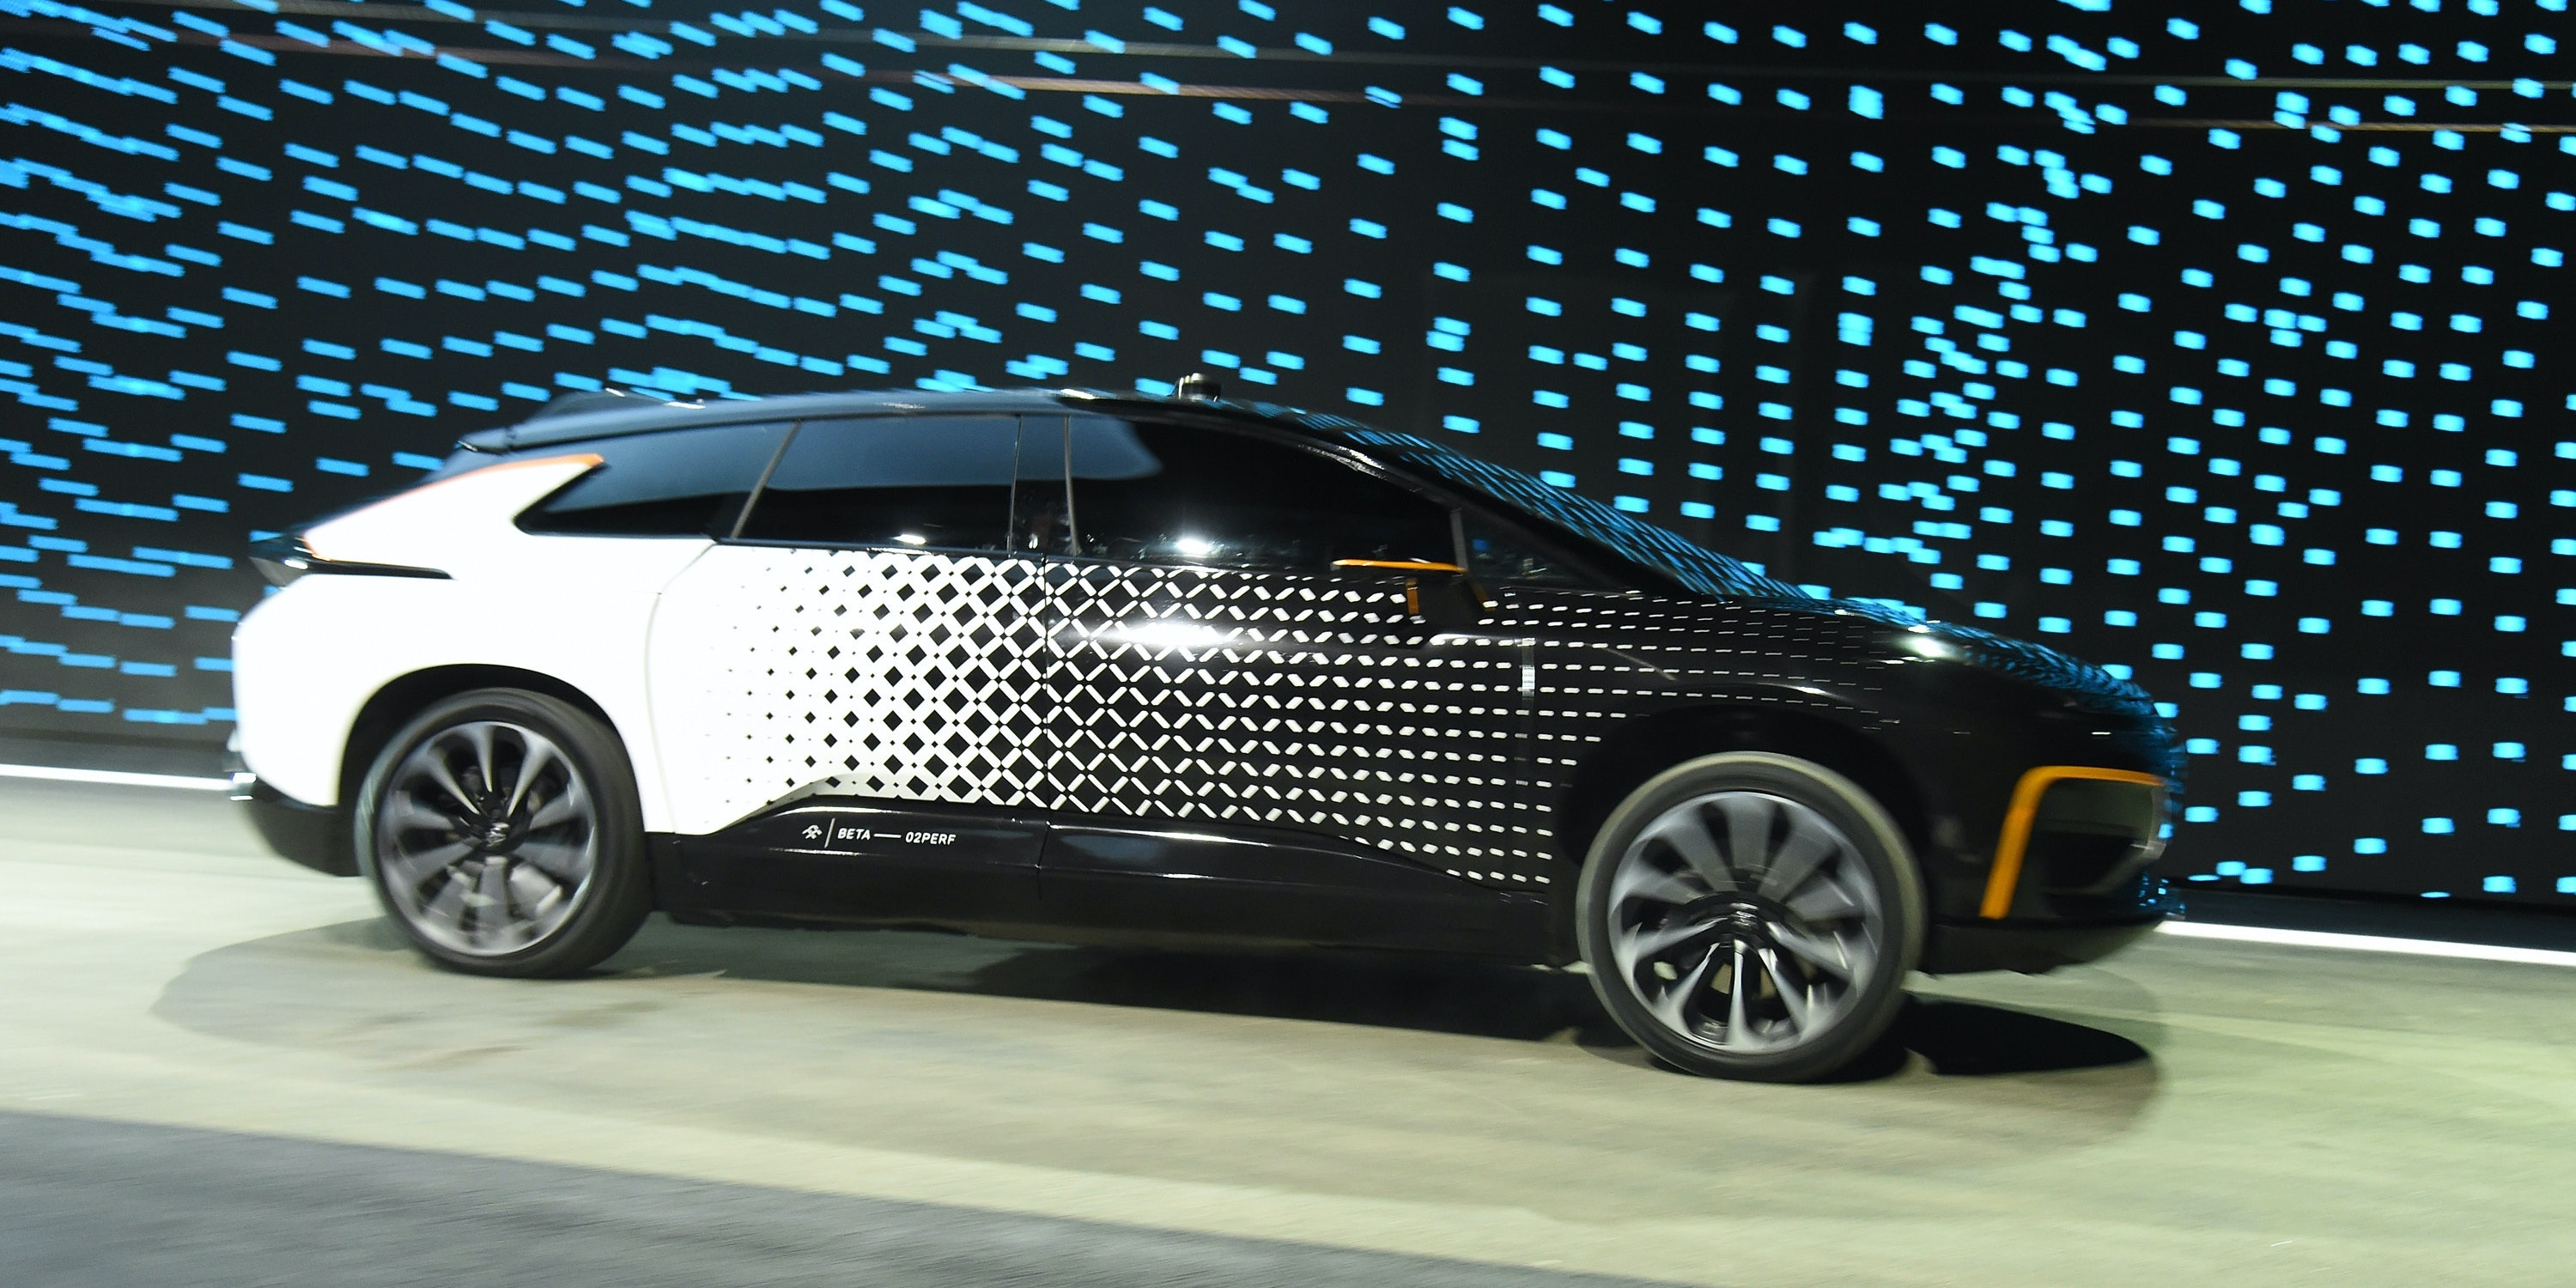 At CES 2017 in Las Vegas, Faraday Future revealed its first-ever production vehicle, the FF 91 , which features a driverless valet parking feature.